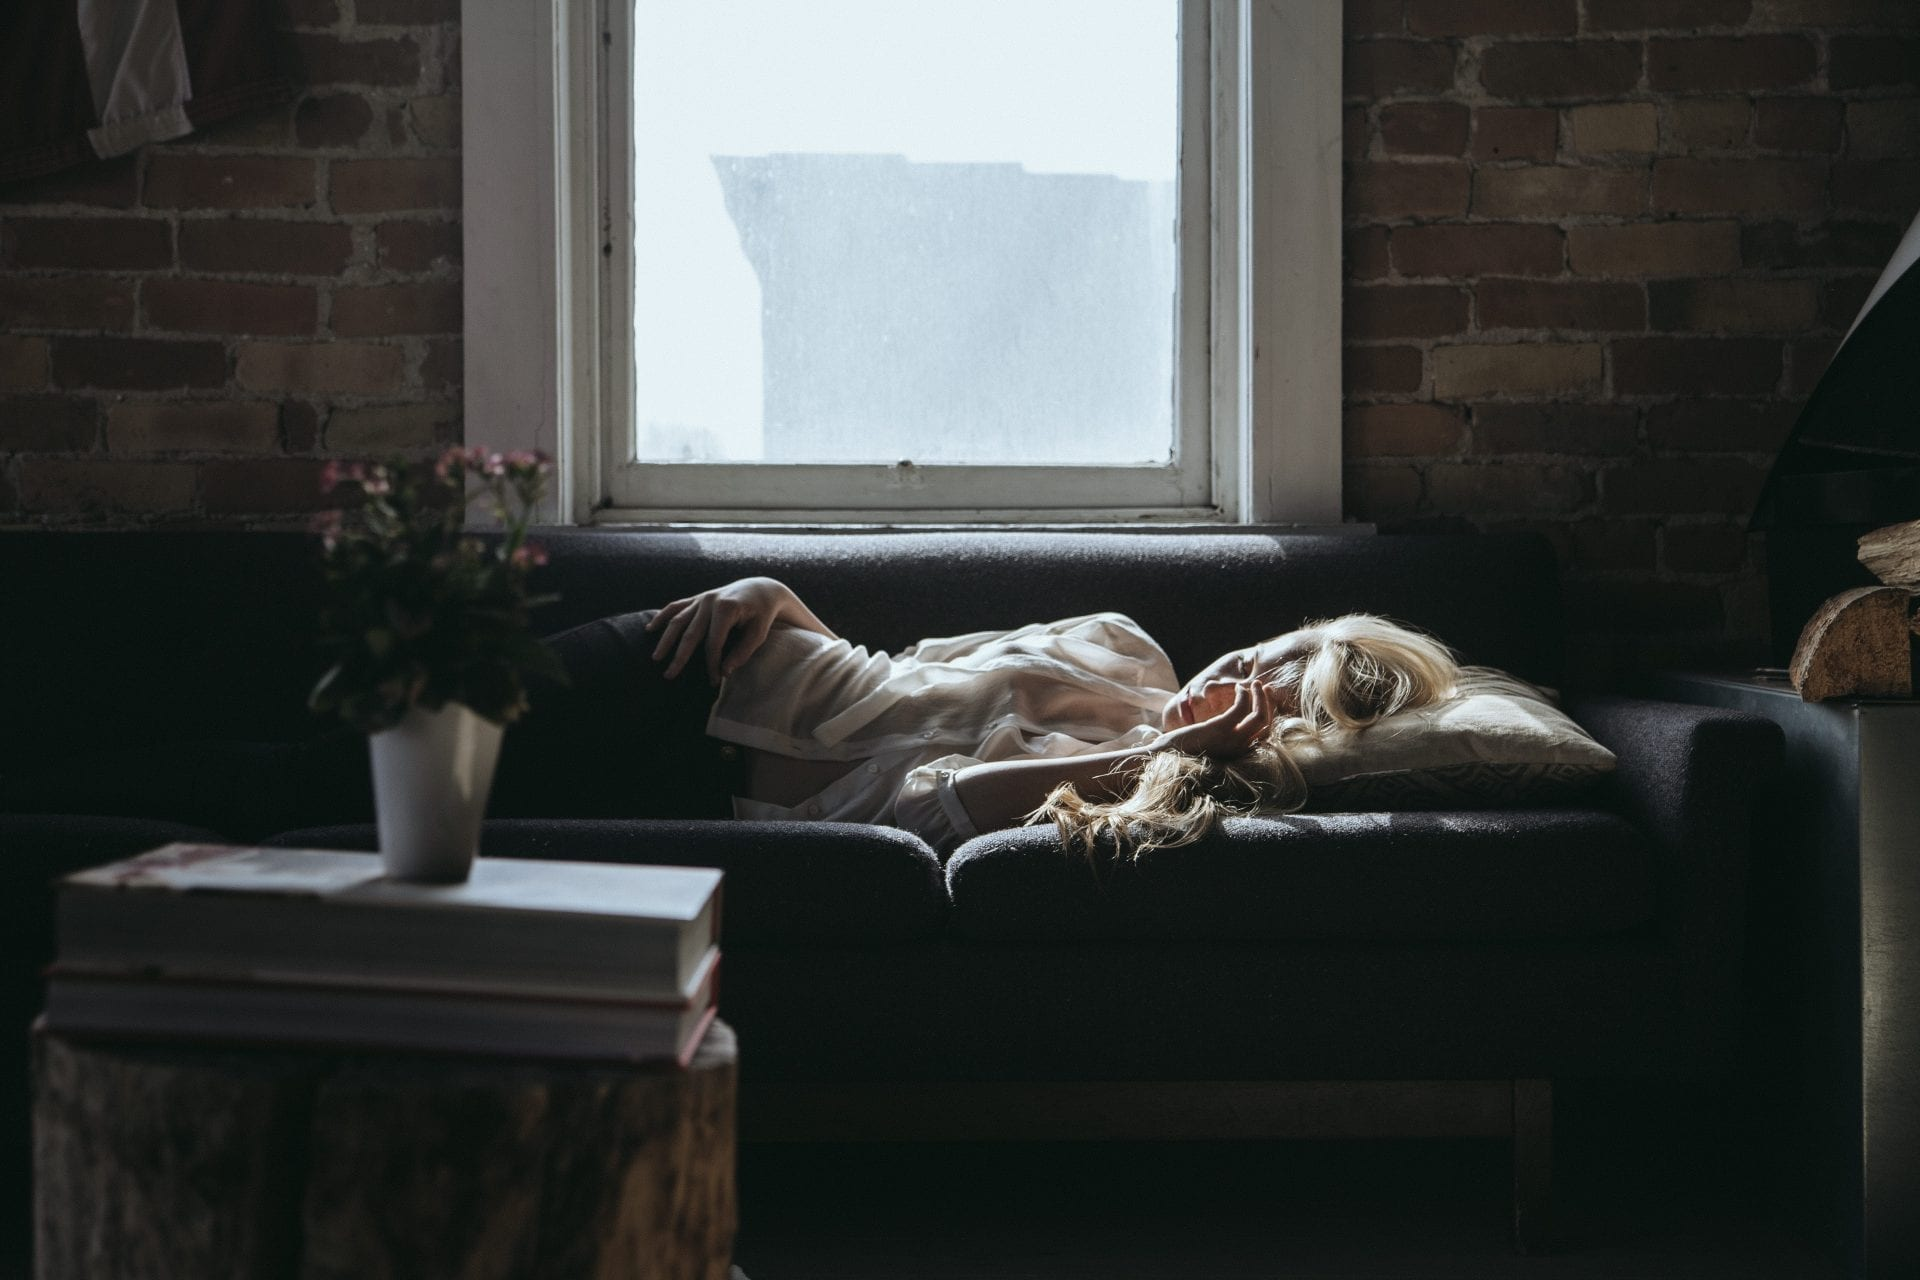 Why You Should Let Your Employees Nap at Work